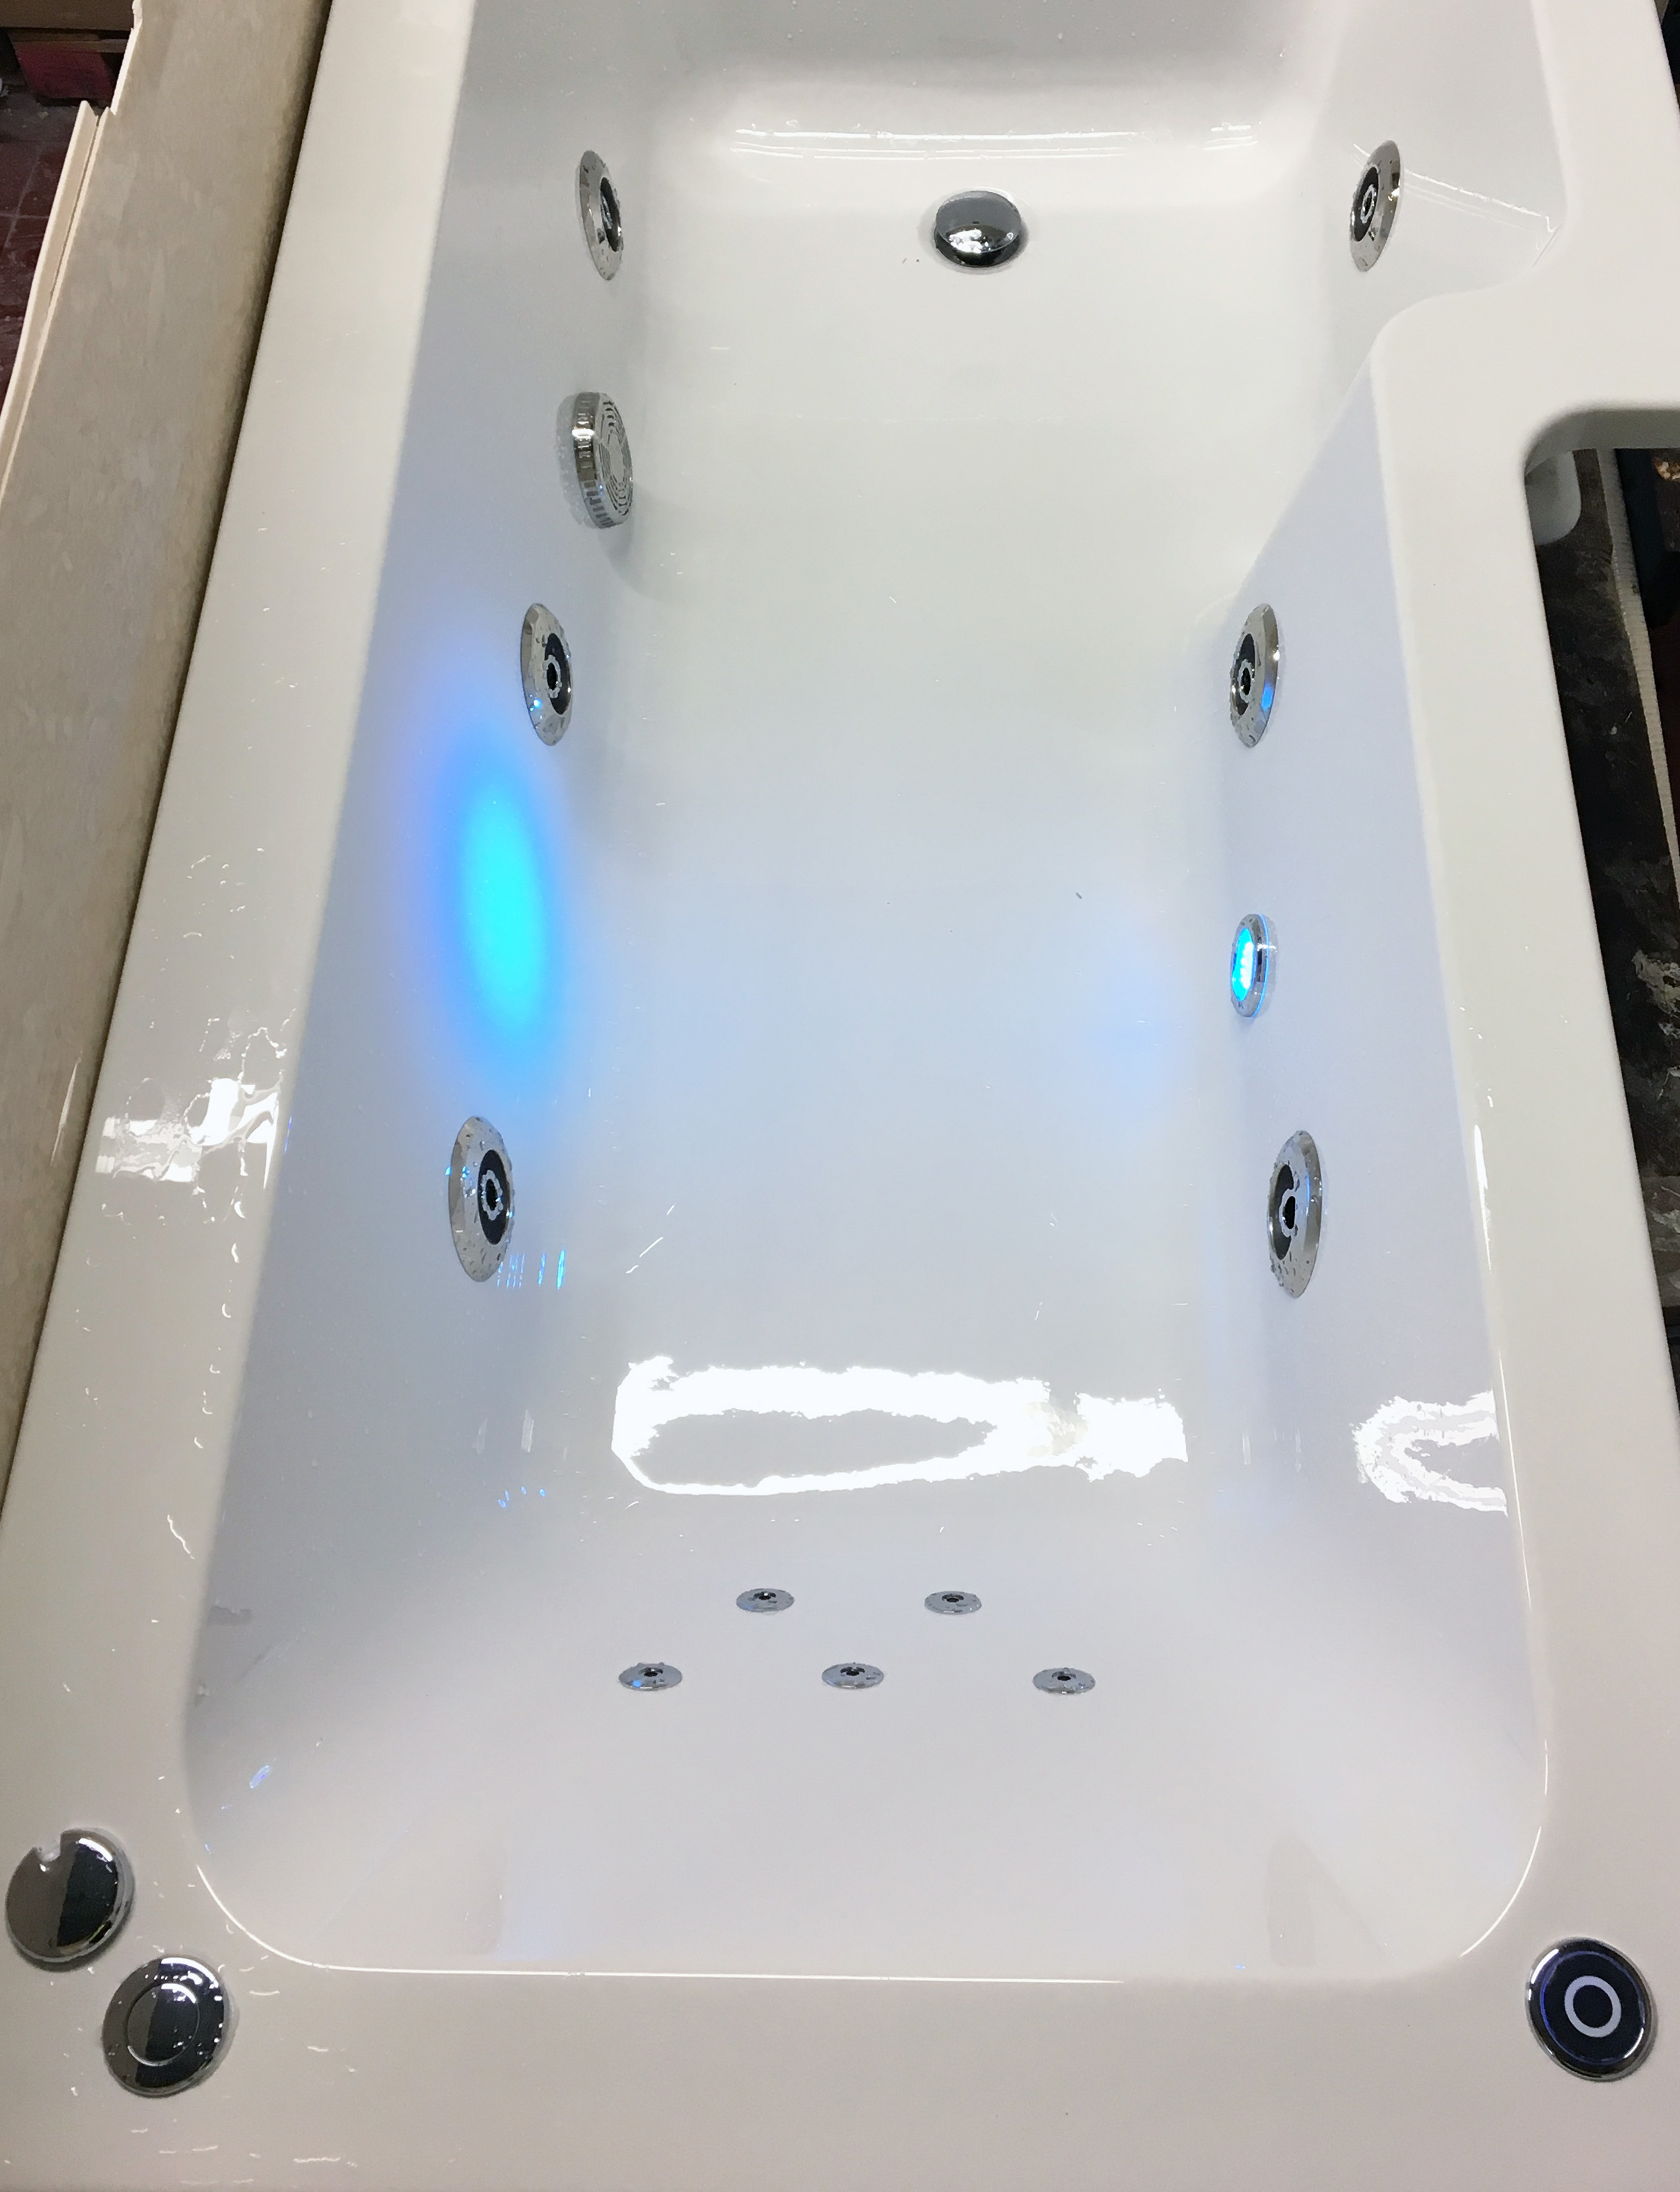 1500, 1600 or 1700mm Whirlpool Jacuzzi Type Acrylic Spa Bath with ...